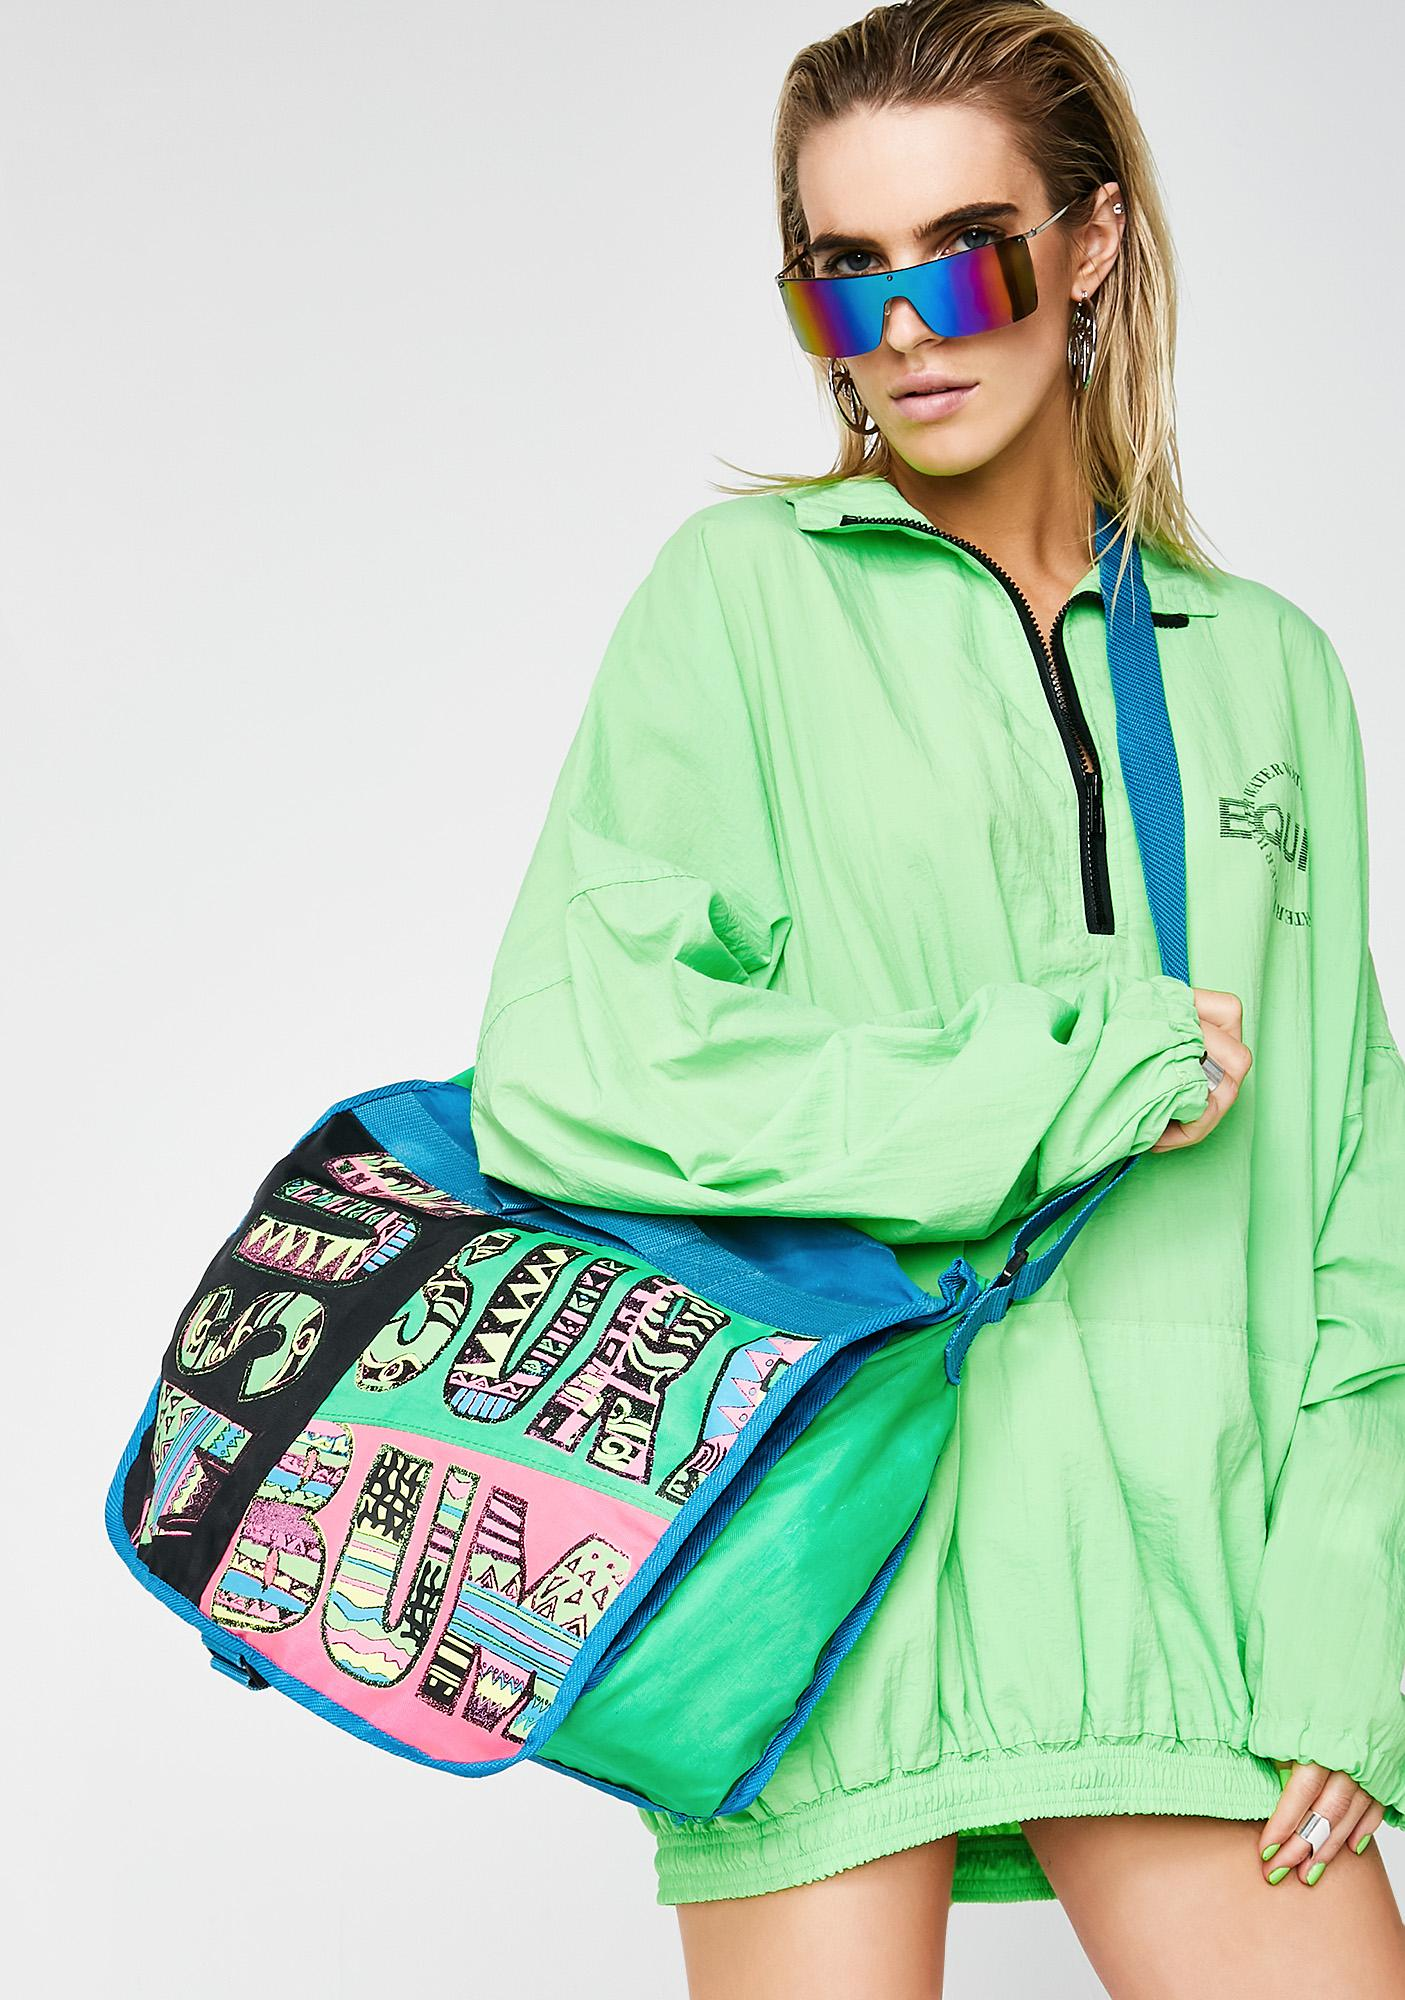 Vintage 80s Neon Surf Bum Bag